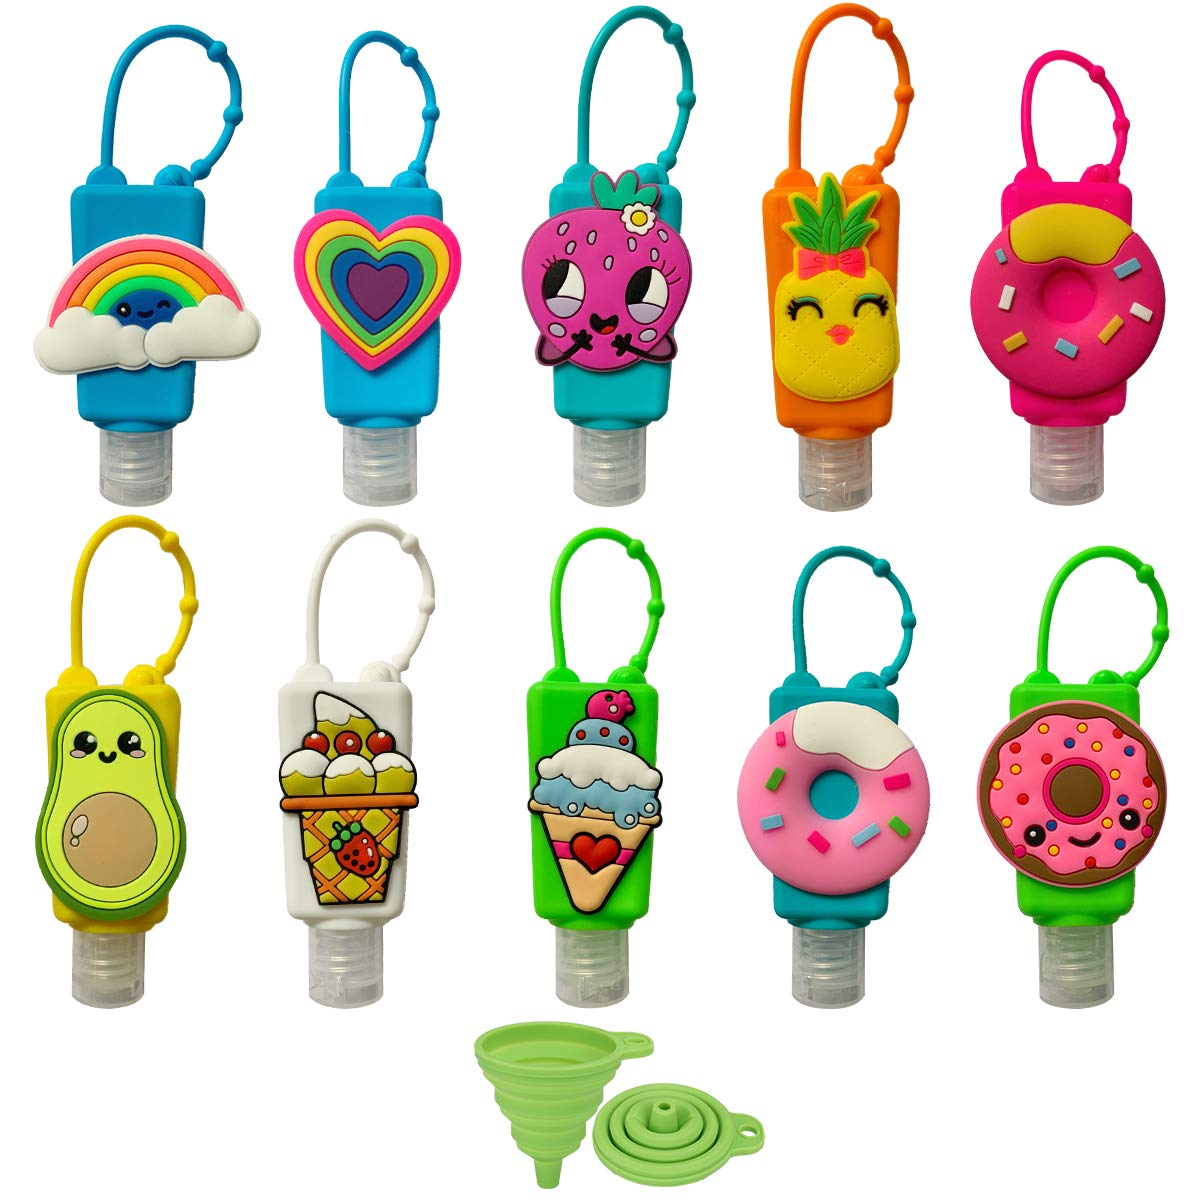 Crenics 10 Pack Mini Cute Cartoon Travel Bottles with Keychain Silicone Detachable Holder, 30ml/1oz Empty Clear Plastic Containers Assorted Pattern Kids Leakproof Travel Bottles(Random Color)